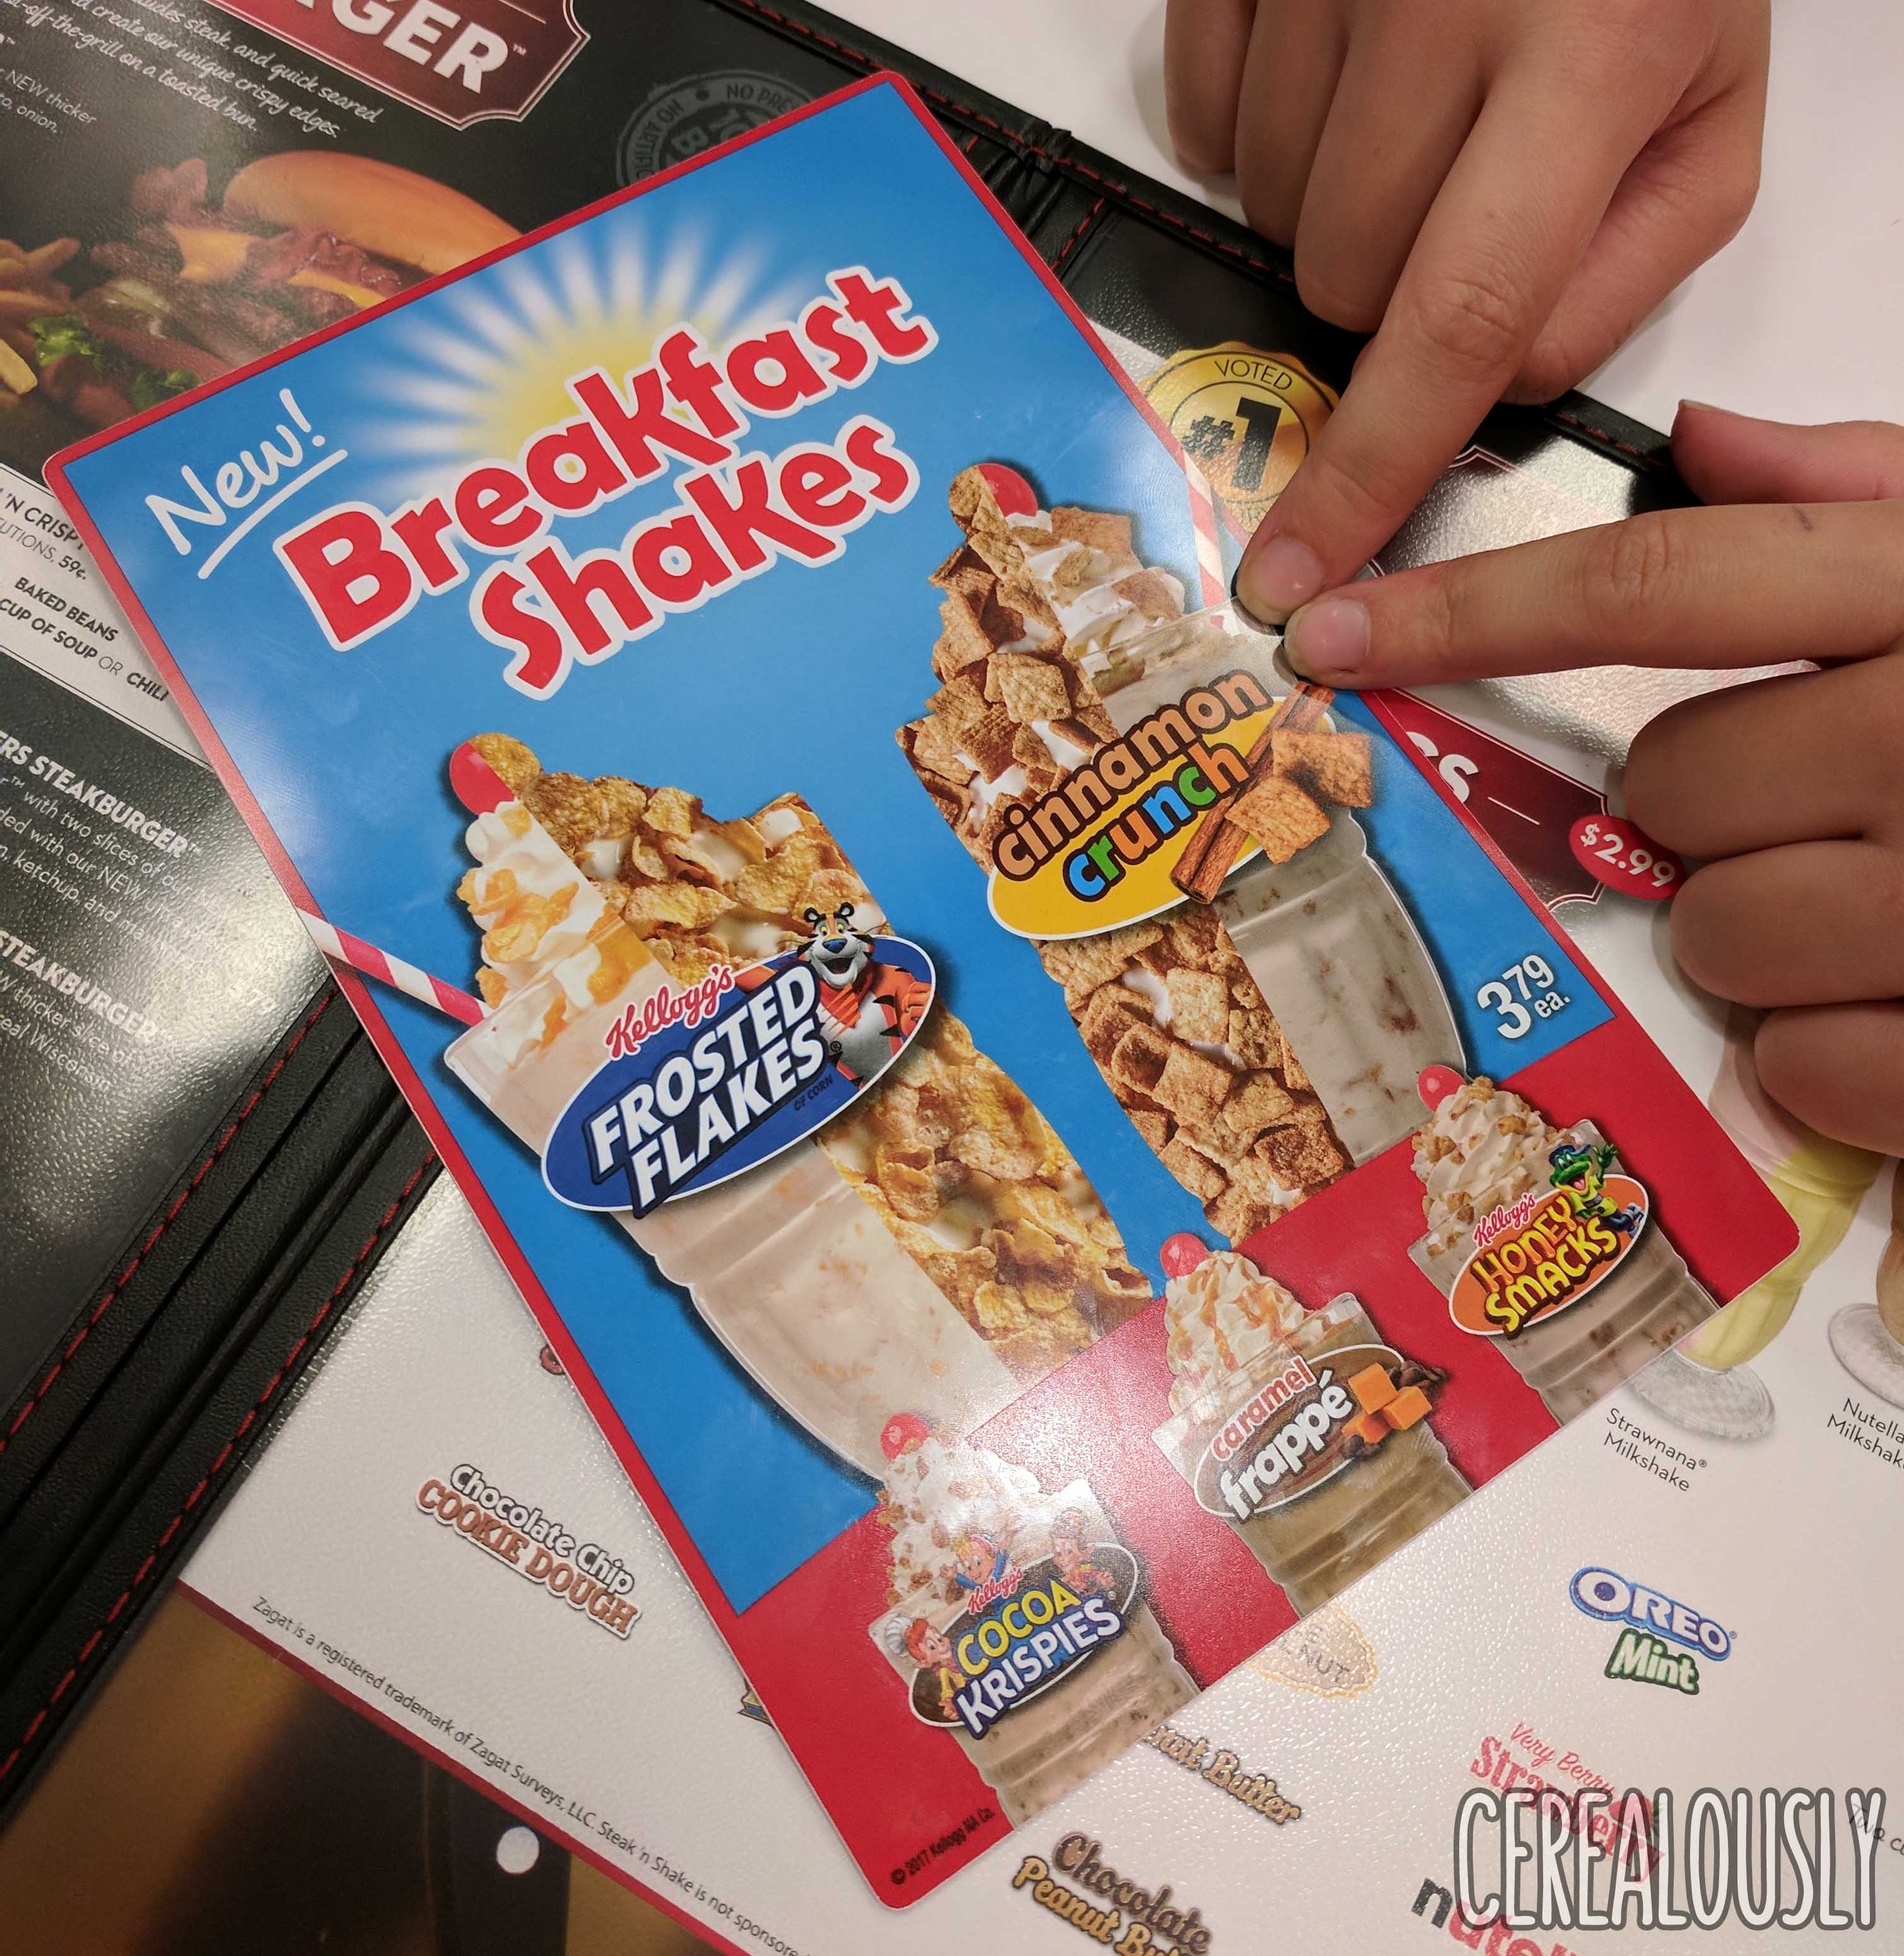 Review steak n shake breakfast cereal milkshakes cinnamon crunch review steak n shake breakfast cereal milkshakes cinnamon crunch honey smacks ccuart Image collections